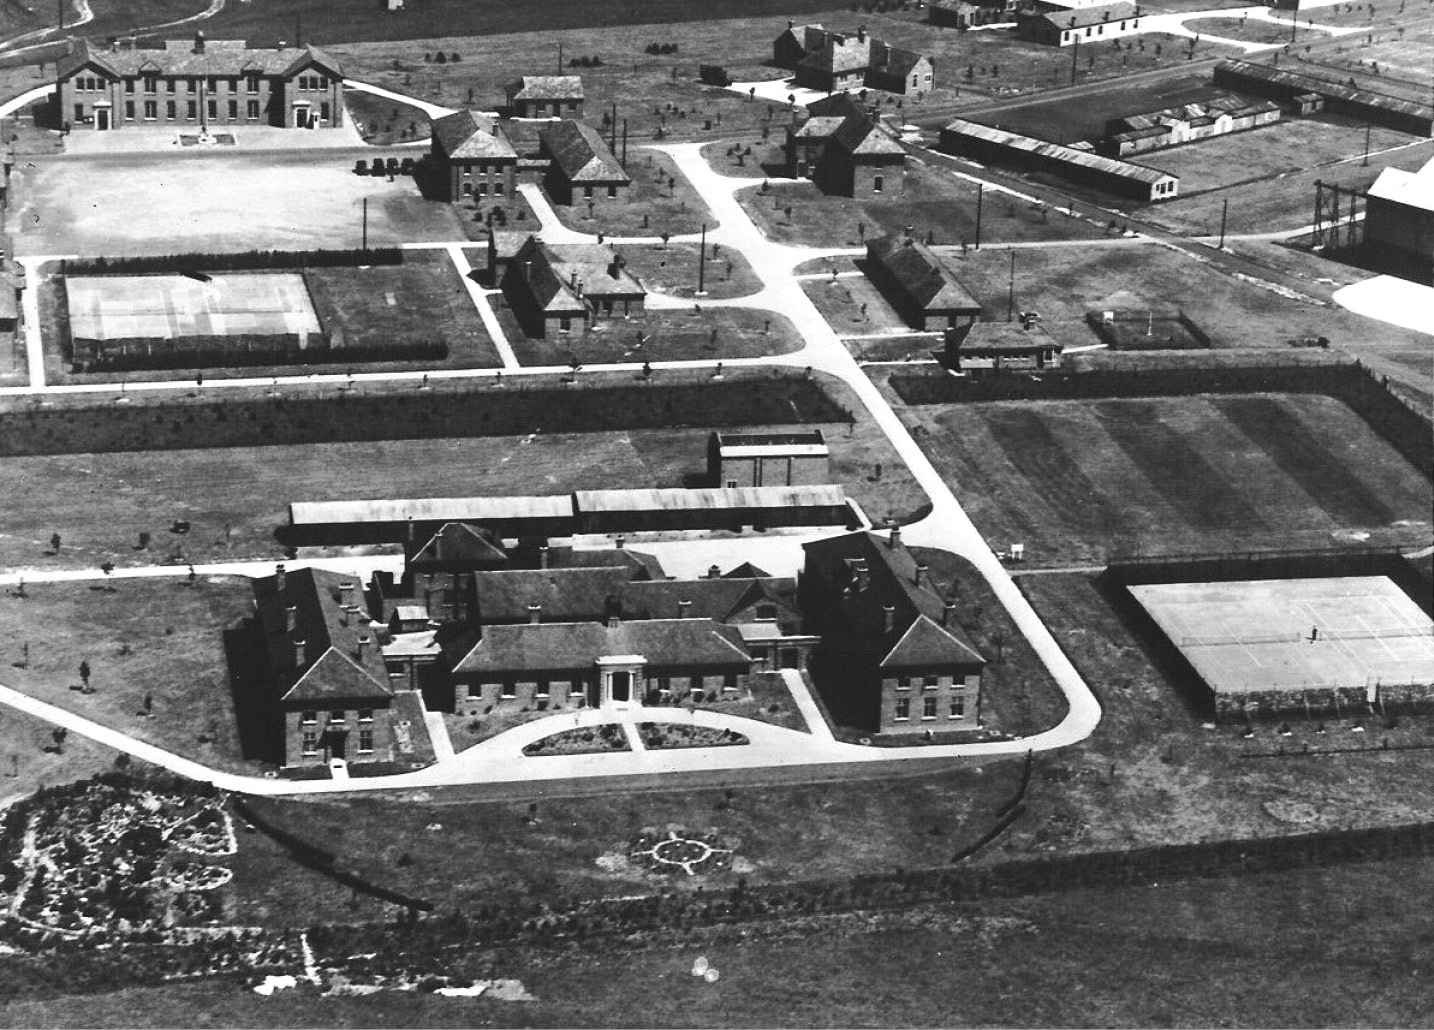 ABOVE Striking new 'permanent' architecture specifically designed for the RAF flourised in the late 1920s as part of the Air Defence of Great Britain scheme as seen with this example from Boscombe Down, pictured in 1933.